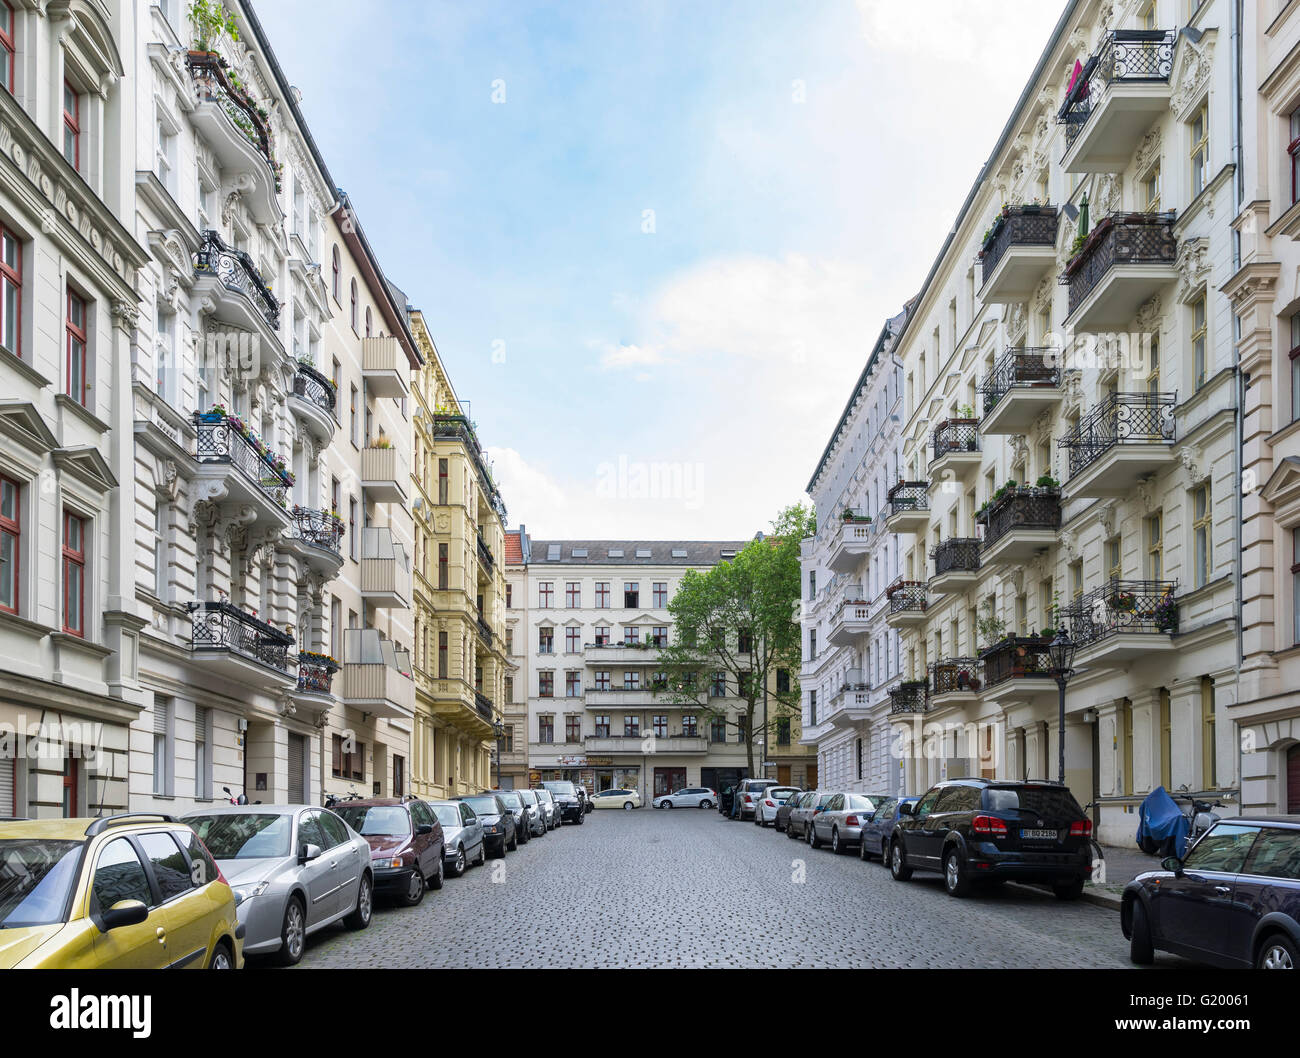 typical street view of traditional apartment buildings and cobbled stock photo 104491689 alamy. Black Bedroom Furniture Sets. Home Design Ideas